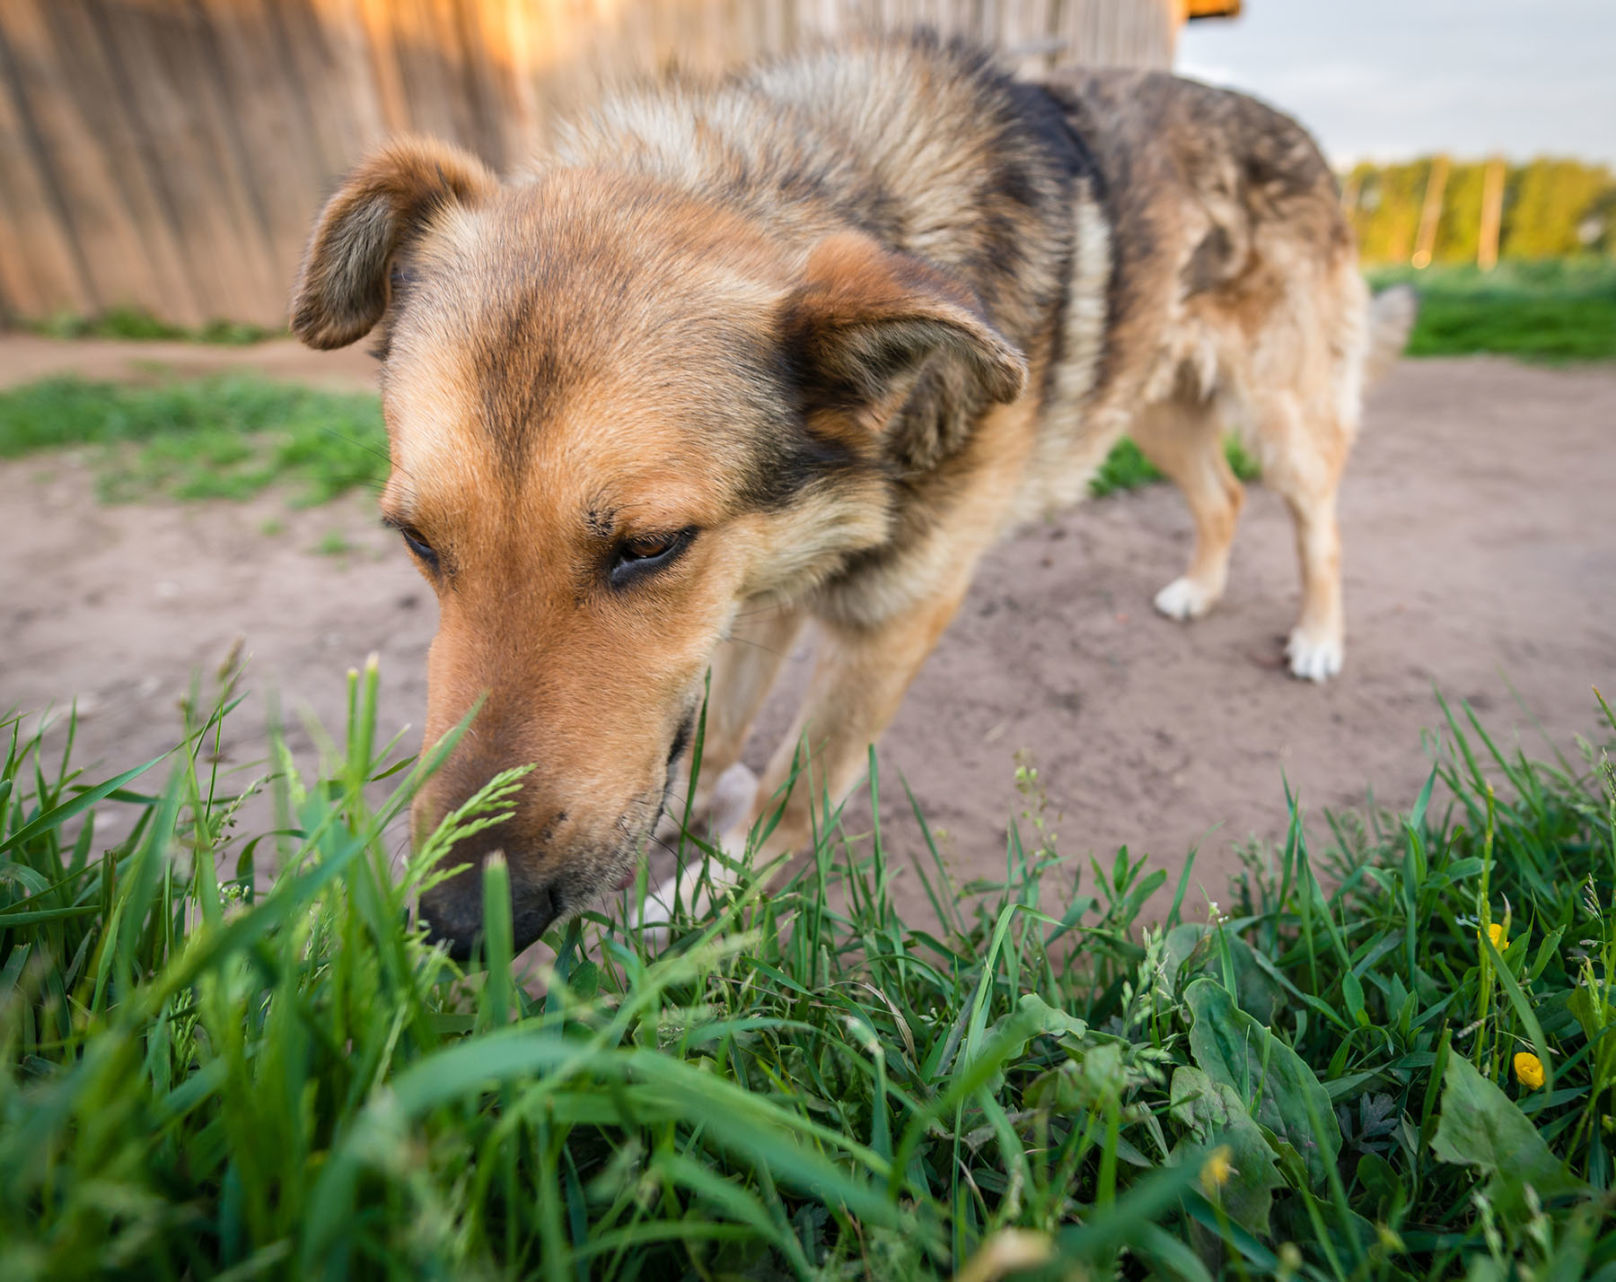 My Pet World: Why do dogs eat grass and